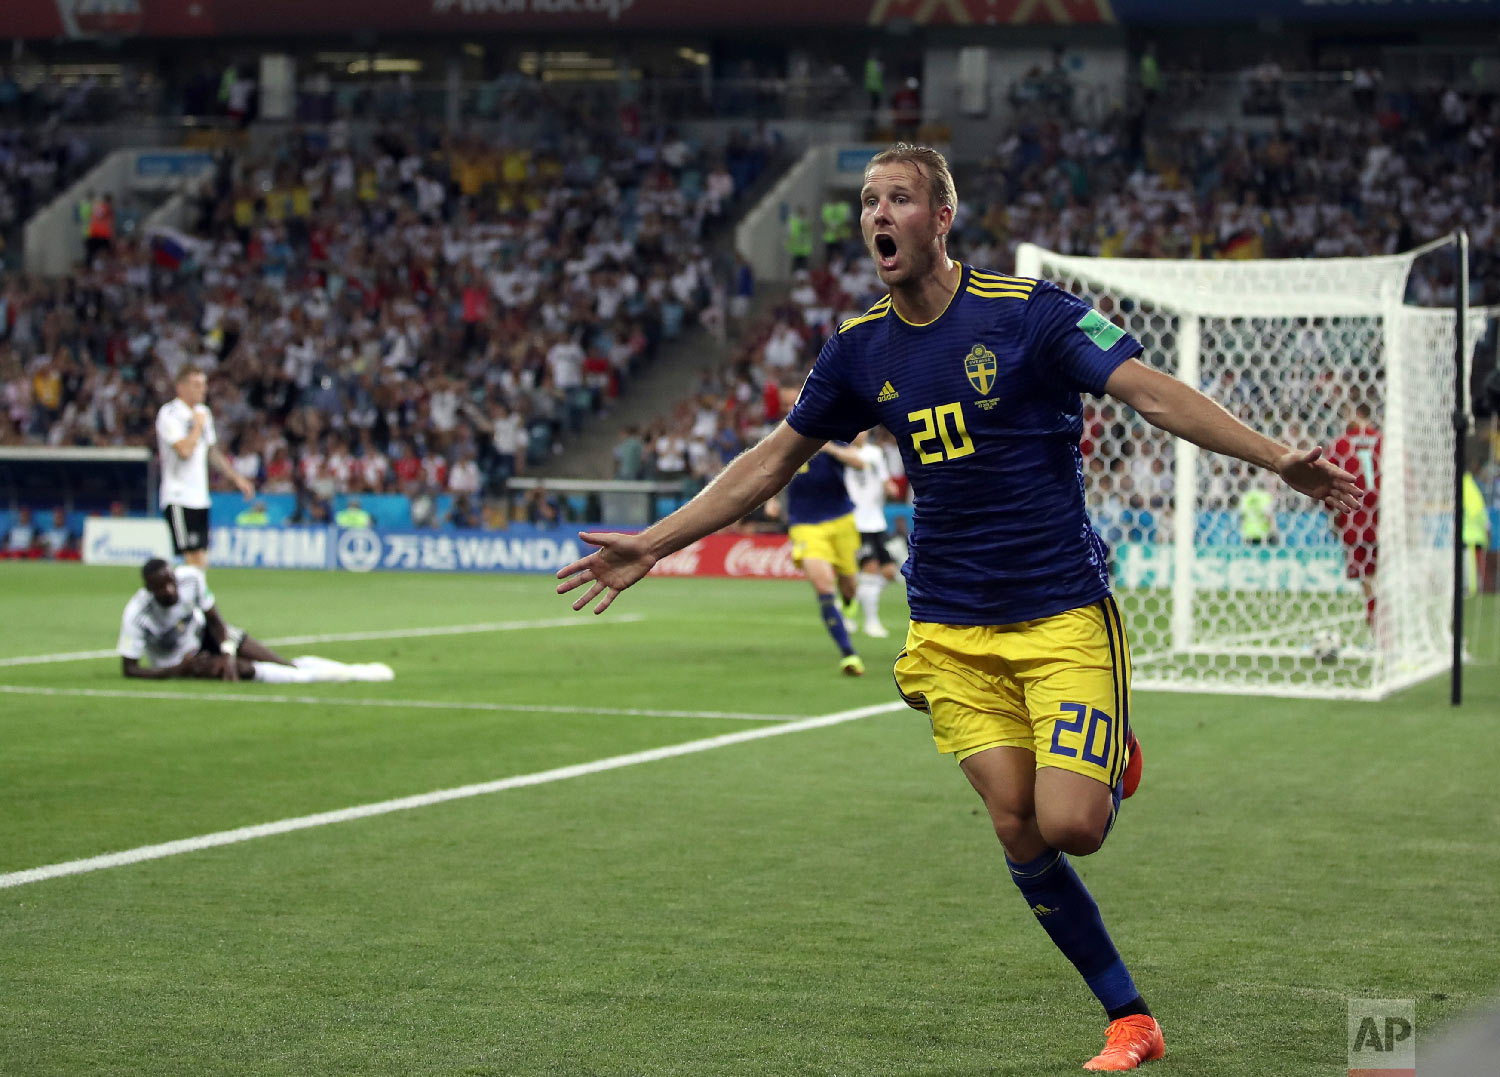 Sweden's Ola Toivonen celebrates after scoring his side's opening goal during the group F match between Germany and Sweden at the 2018 soccer World Cup in the Fisht Stadium in Sochi, Russia, Saturday, June 23, 2018. (AP Photo/Thanassis Stavrakis)